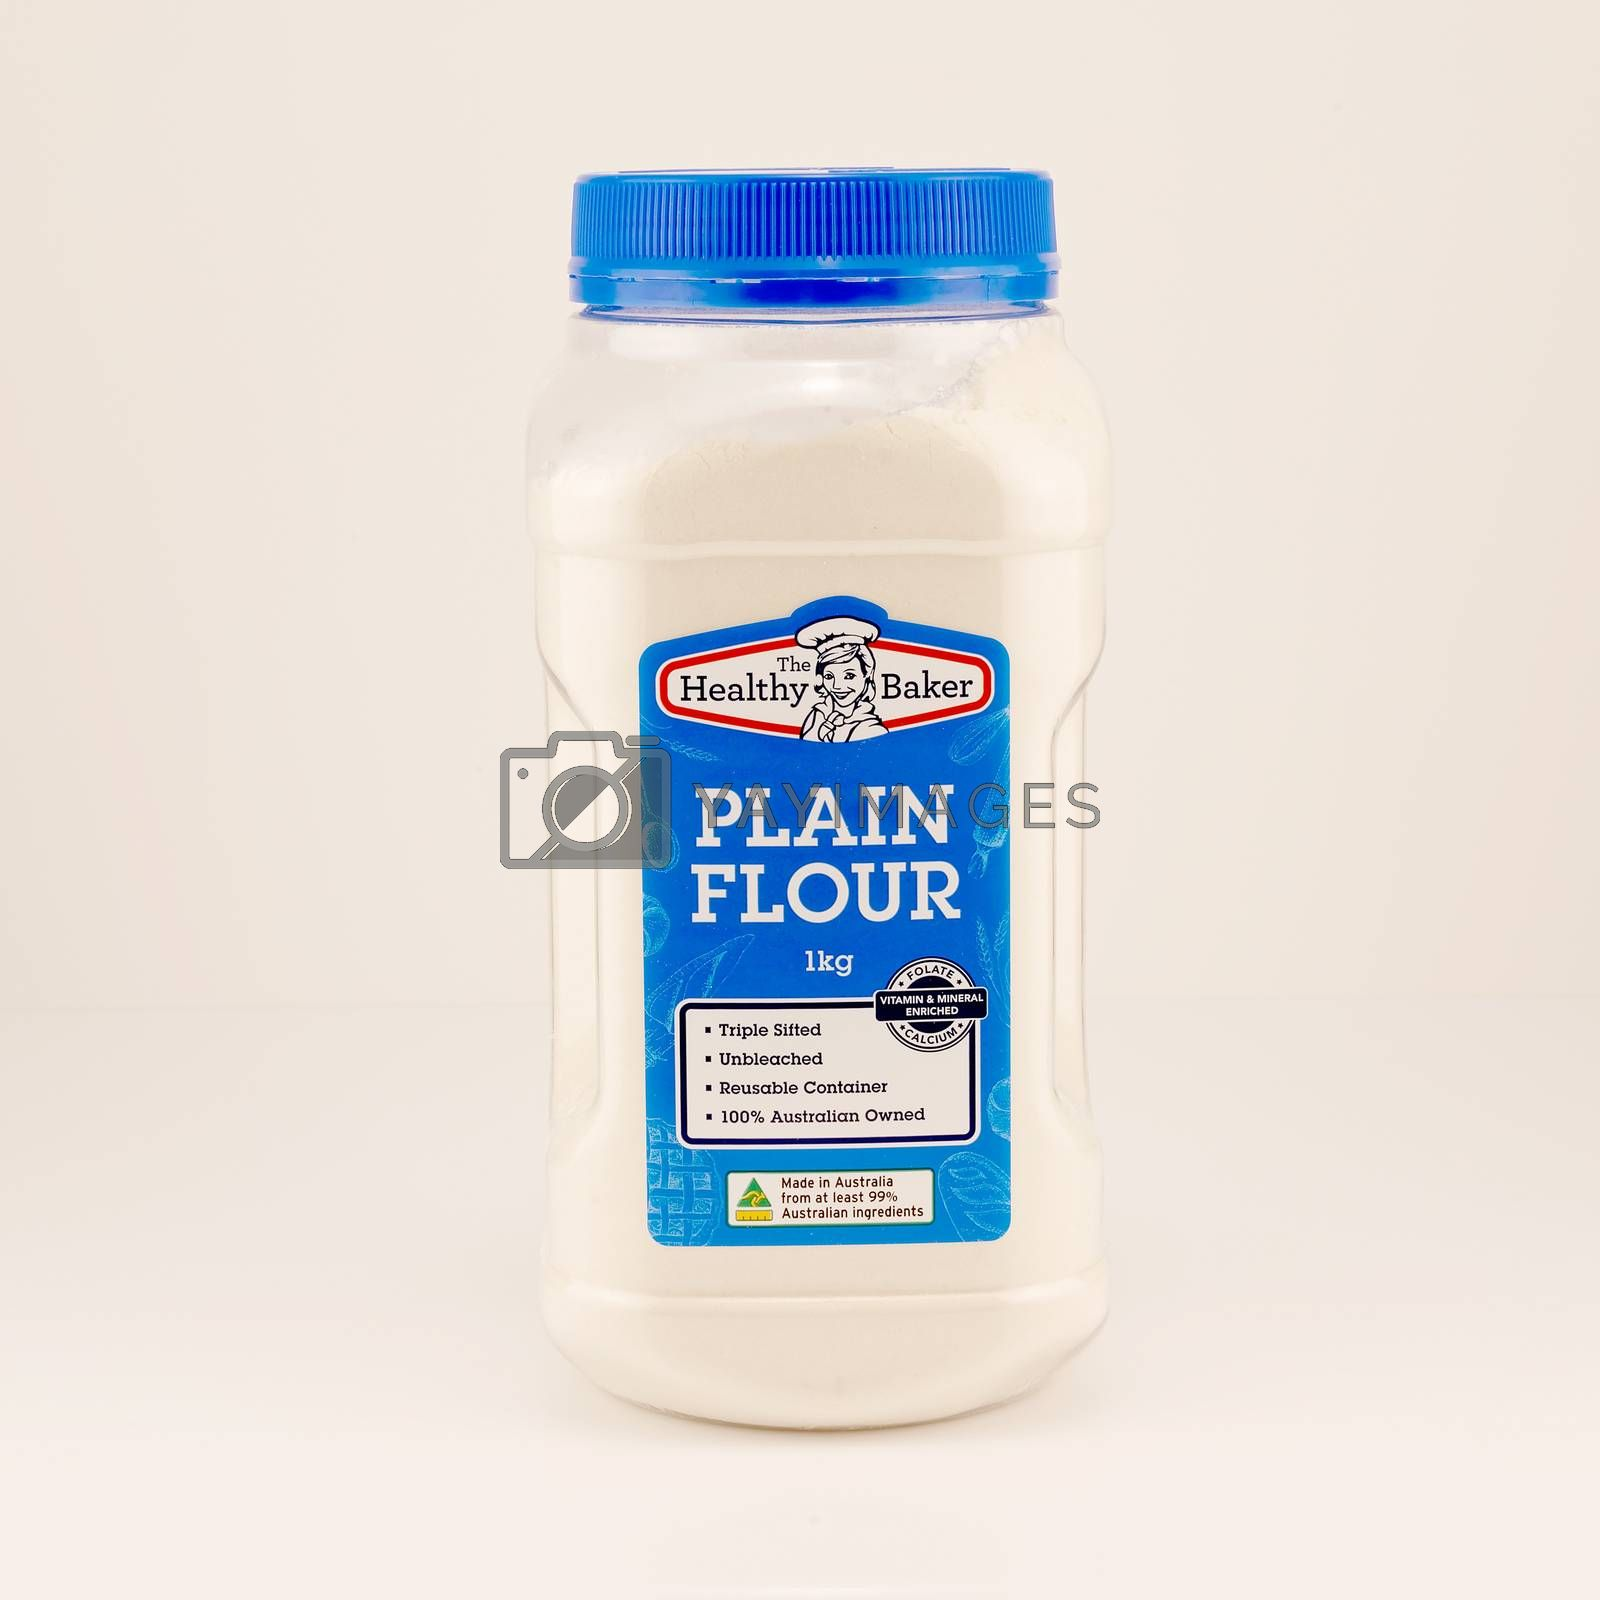 Mackay, Queensland, Australia - February 2020: Bottle of plain flour isolated on a white background, product photography